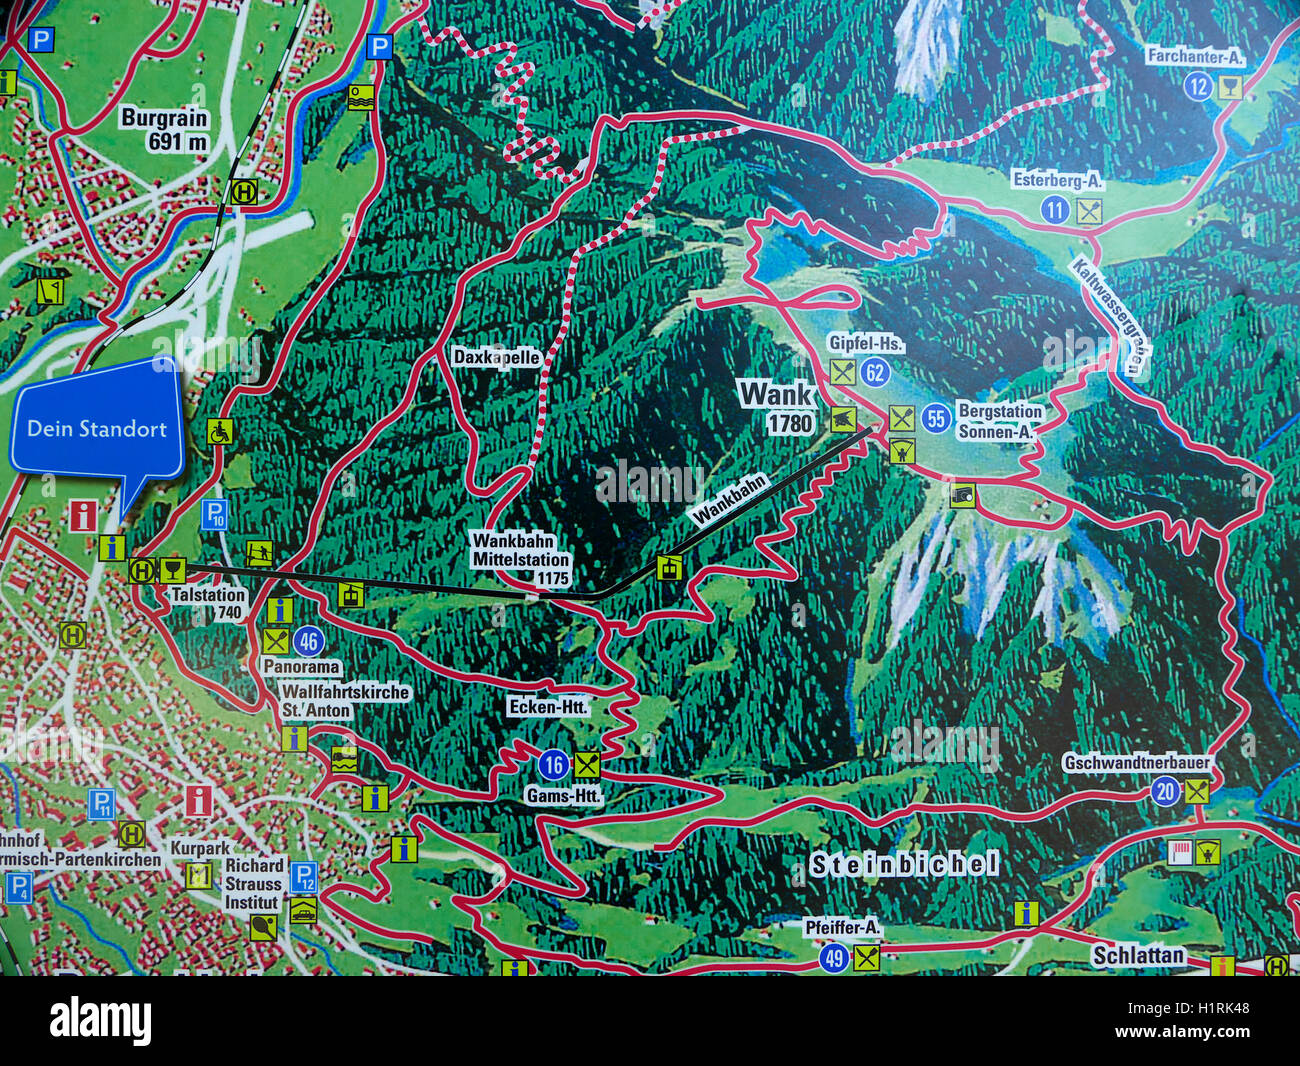 Map Of Germany Mountains.The Alps Germany Garmisch Partenkirchen Mount Wank Mountain Map